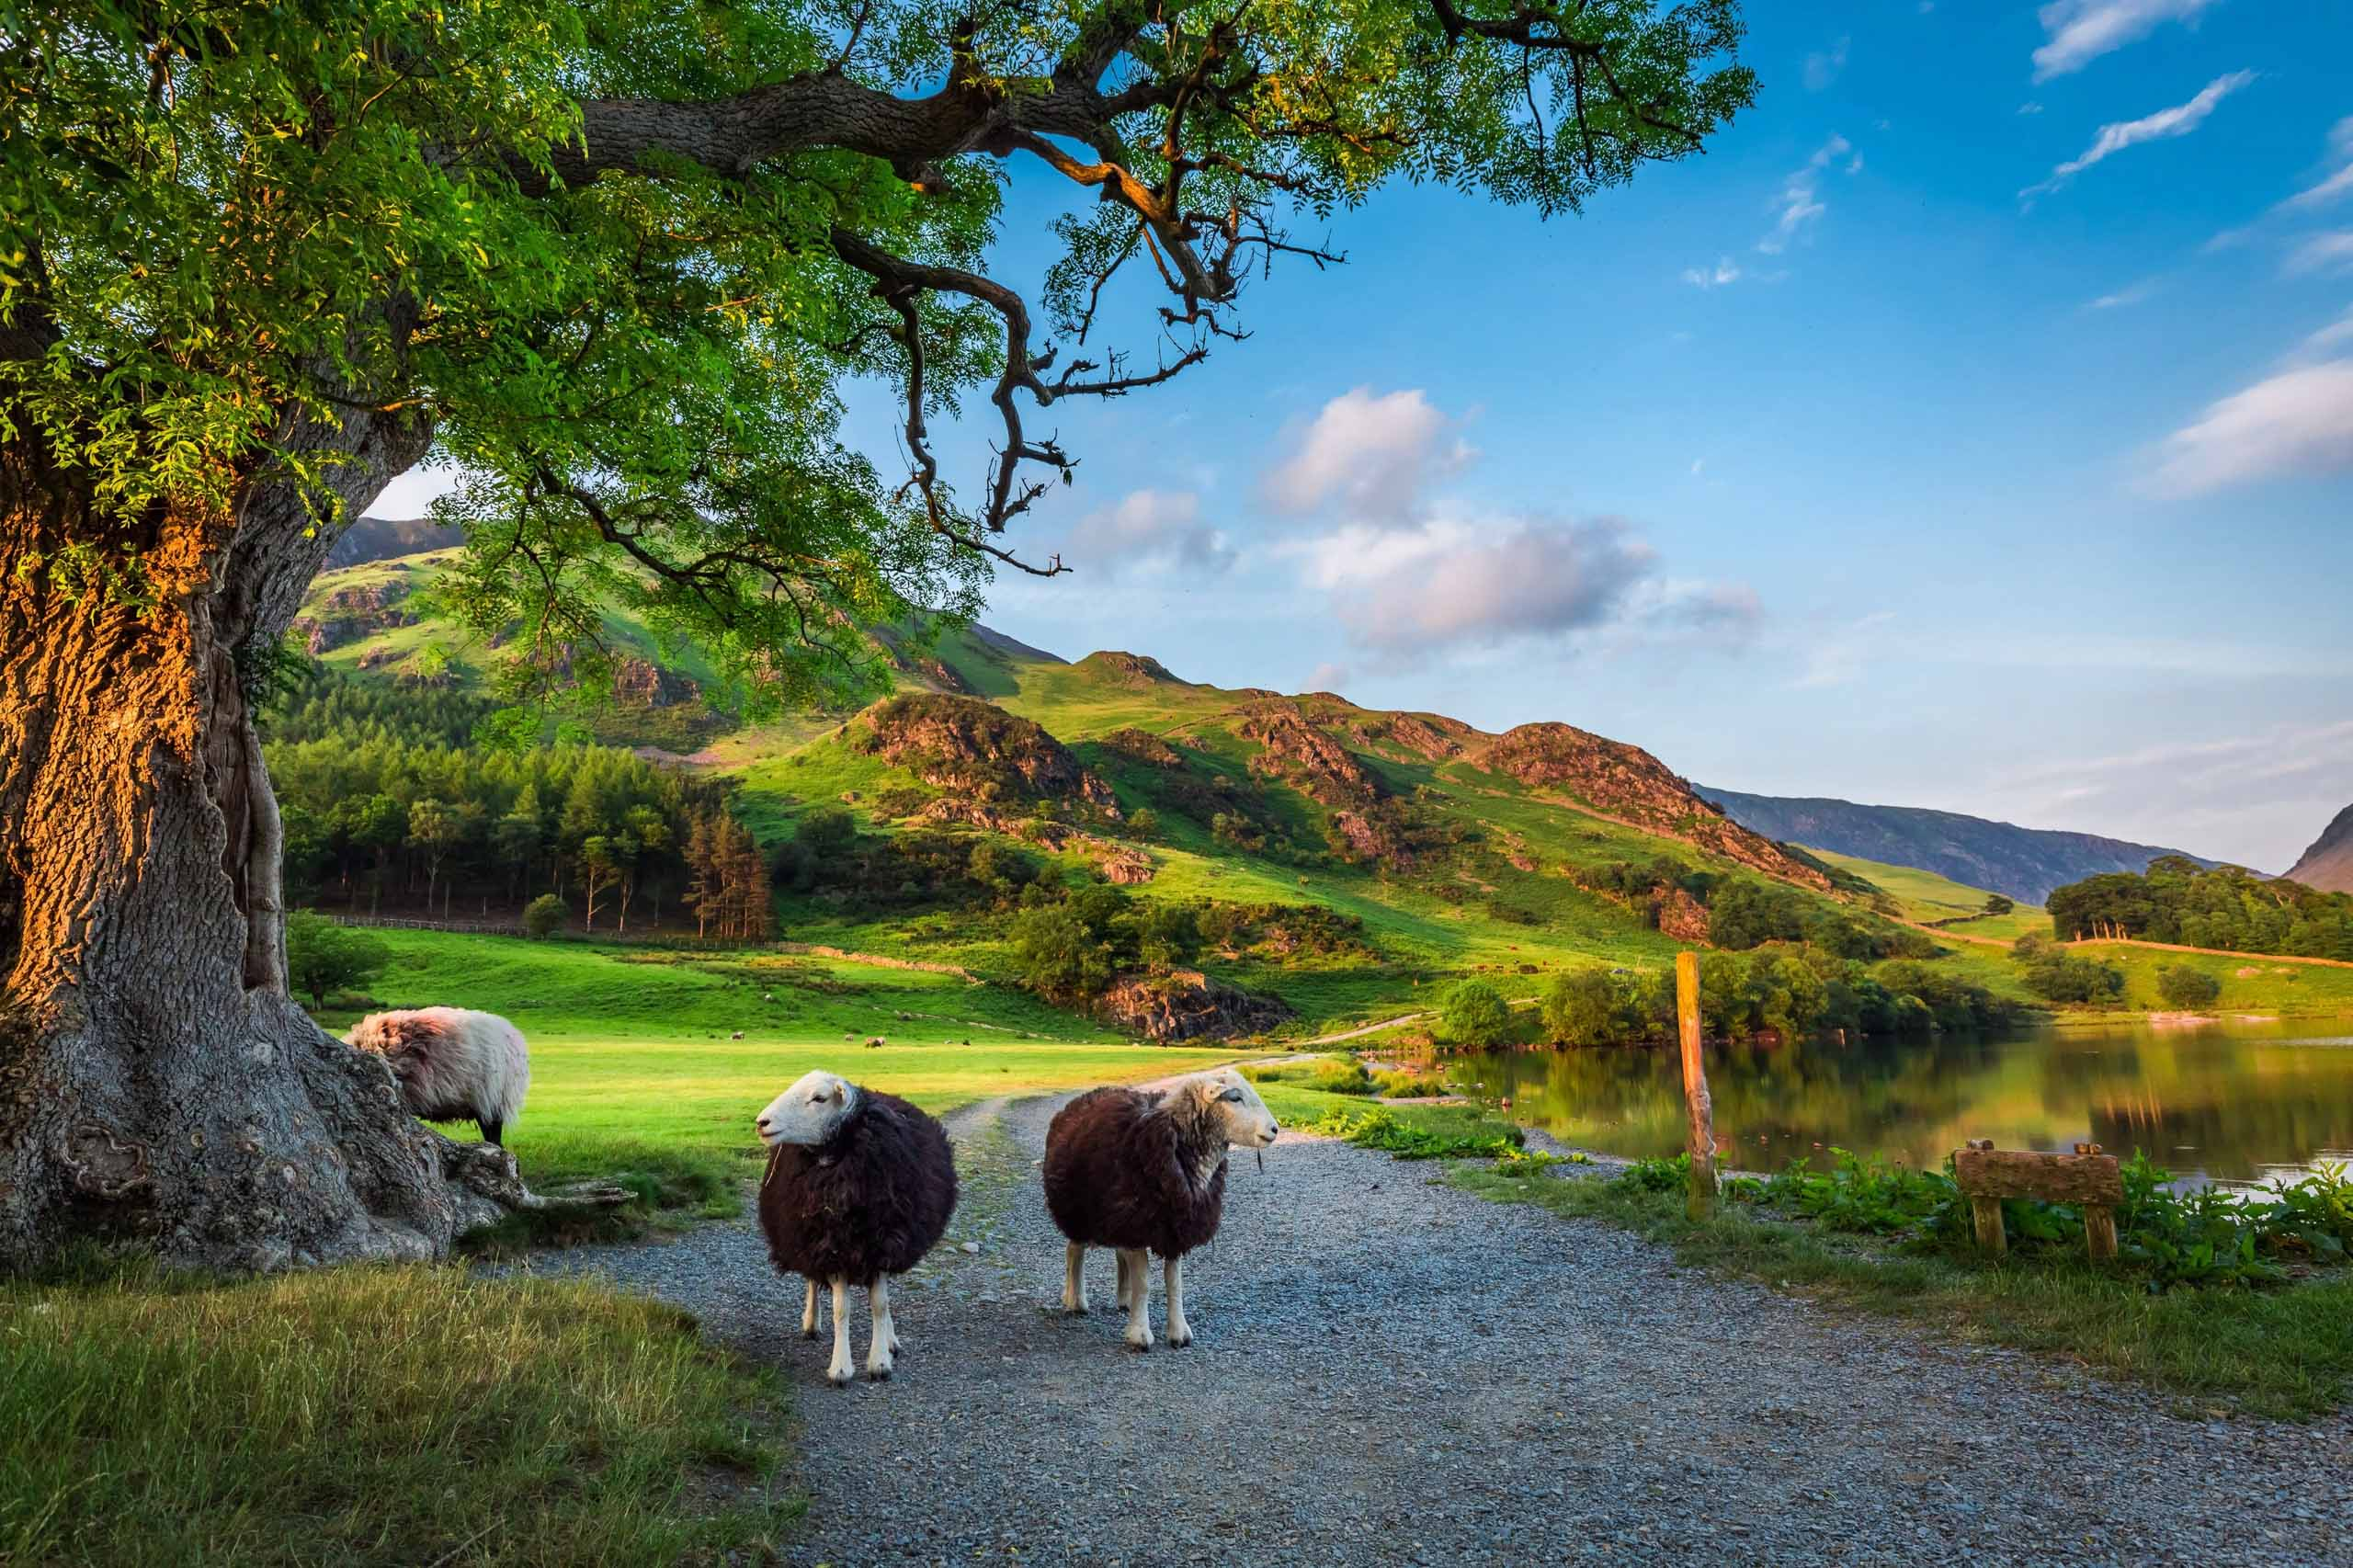 Two sheep in the Lake District, UK